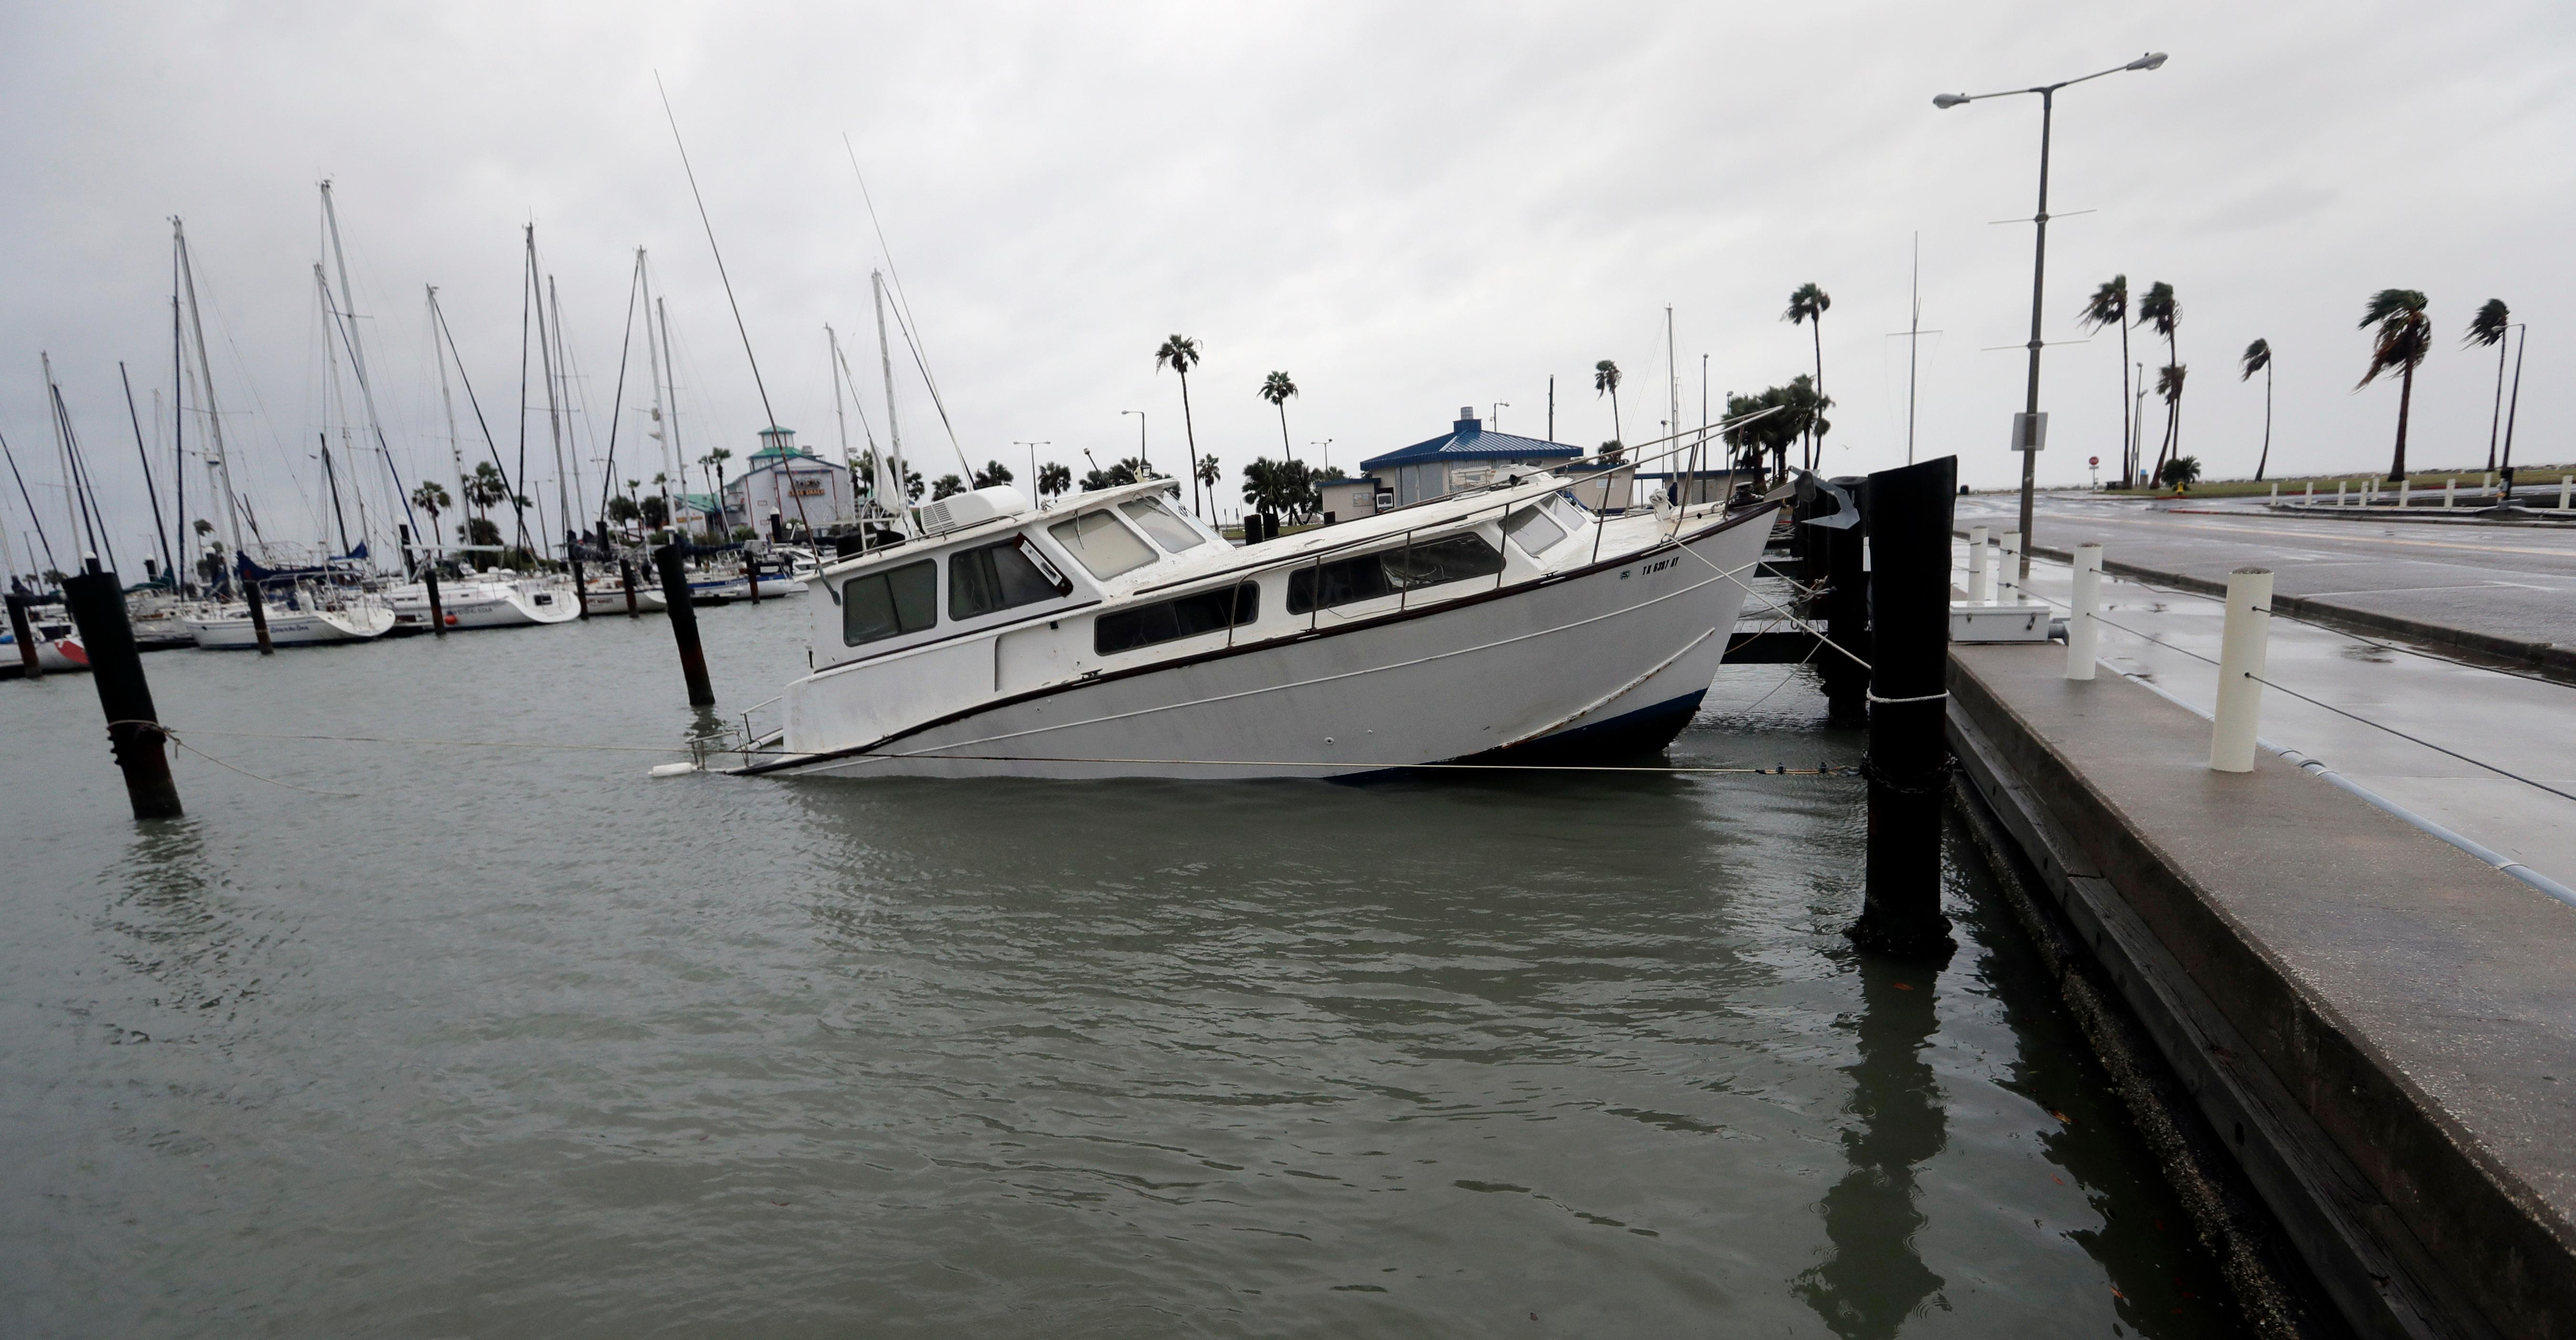 A fishing boat is left partial submerged after Hurricane Harvey swept through the area, Saturday, Aug. 26, 2017, in Corpus Christi, Texas. Harvey has been further downgraded to a Category 1 hurricane as it churns slowly inland from the Texas Gulf Coast, already depositing more than 9 inches of rain in South Texas. (AP Photo/Eric Gay)